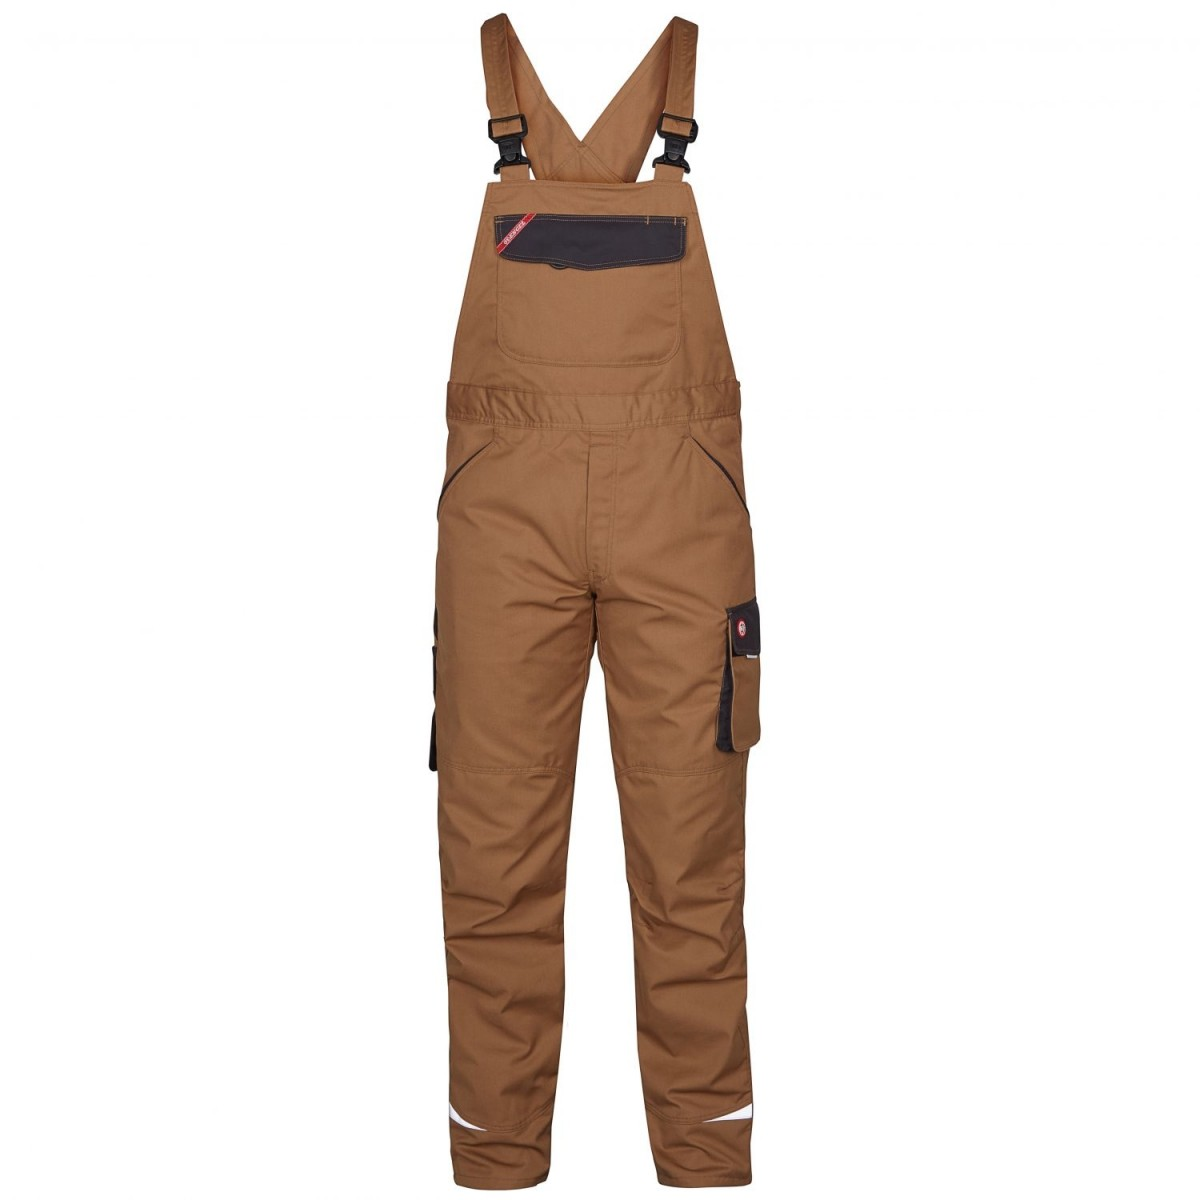 F. Engel Galaxy Light Overall Toffee Brown/Antrazitgrå-31